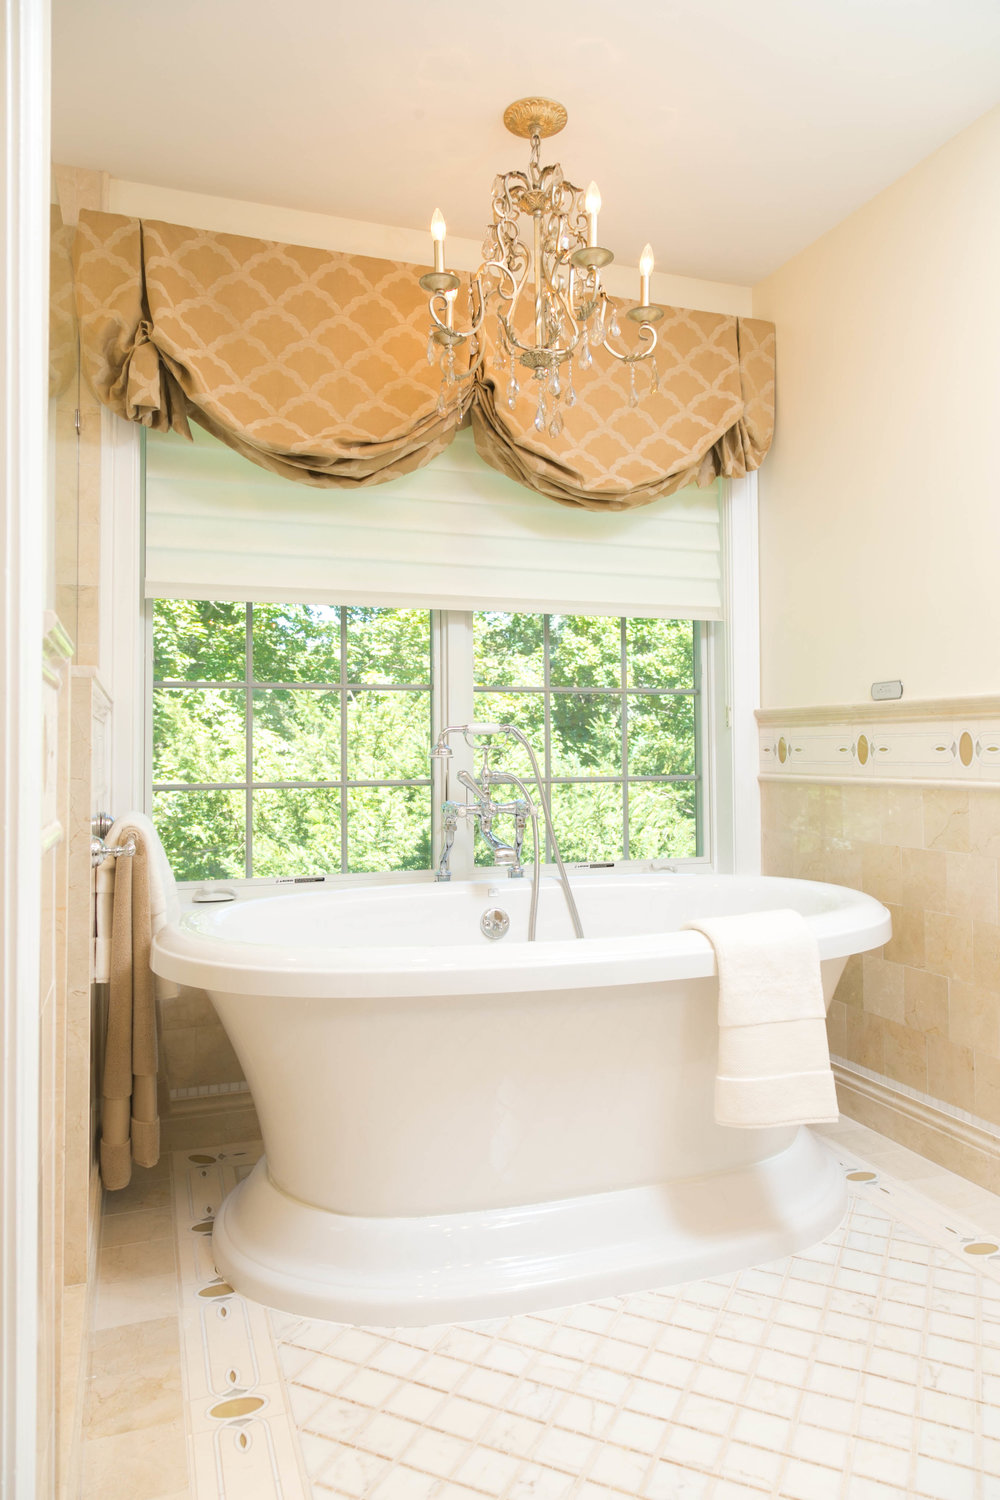 Luxurious bathroom with round plunge bath and custom window coverings